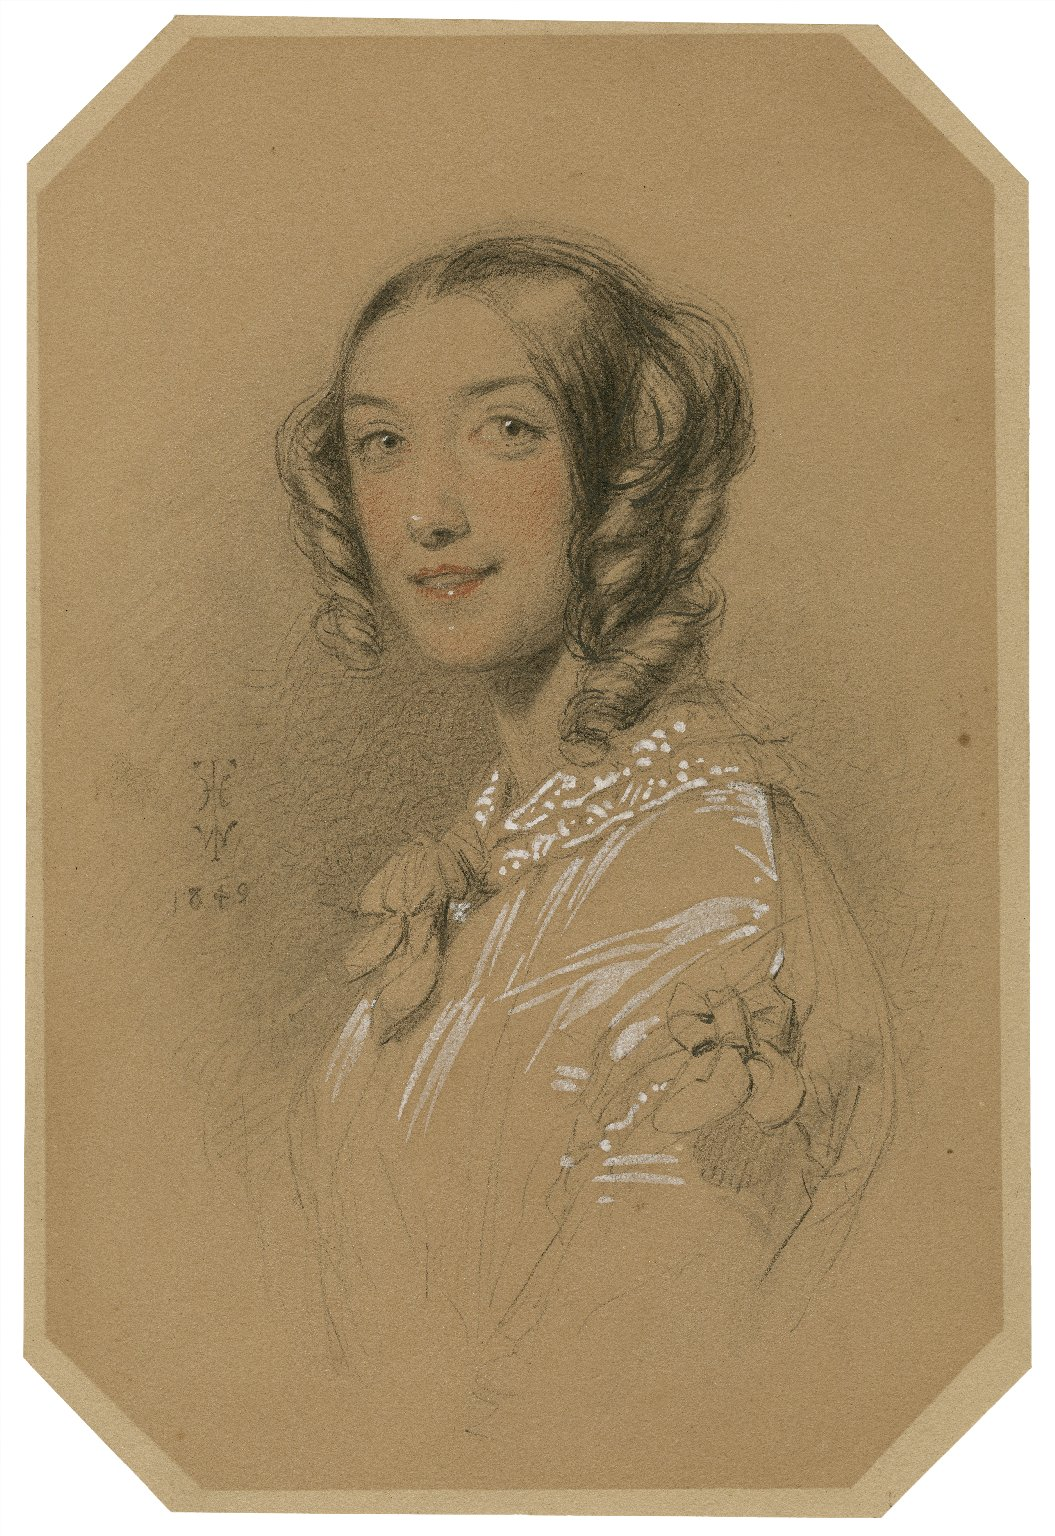 [Miss Woolgar (Mrs. Alfred Mellon)] [graphic] / T.H.W.